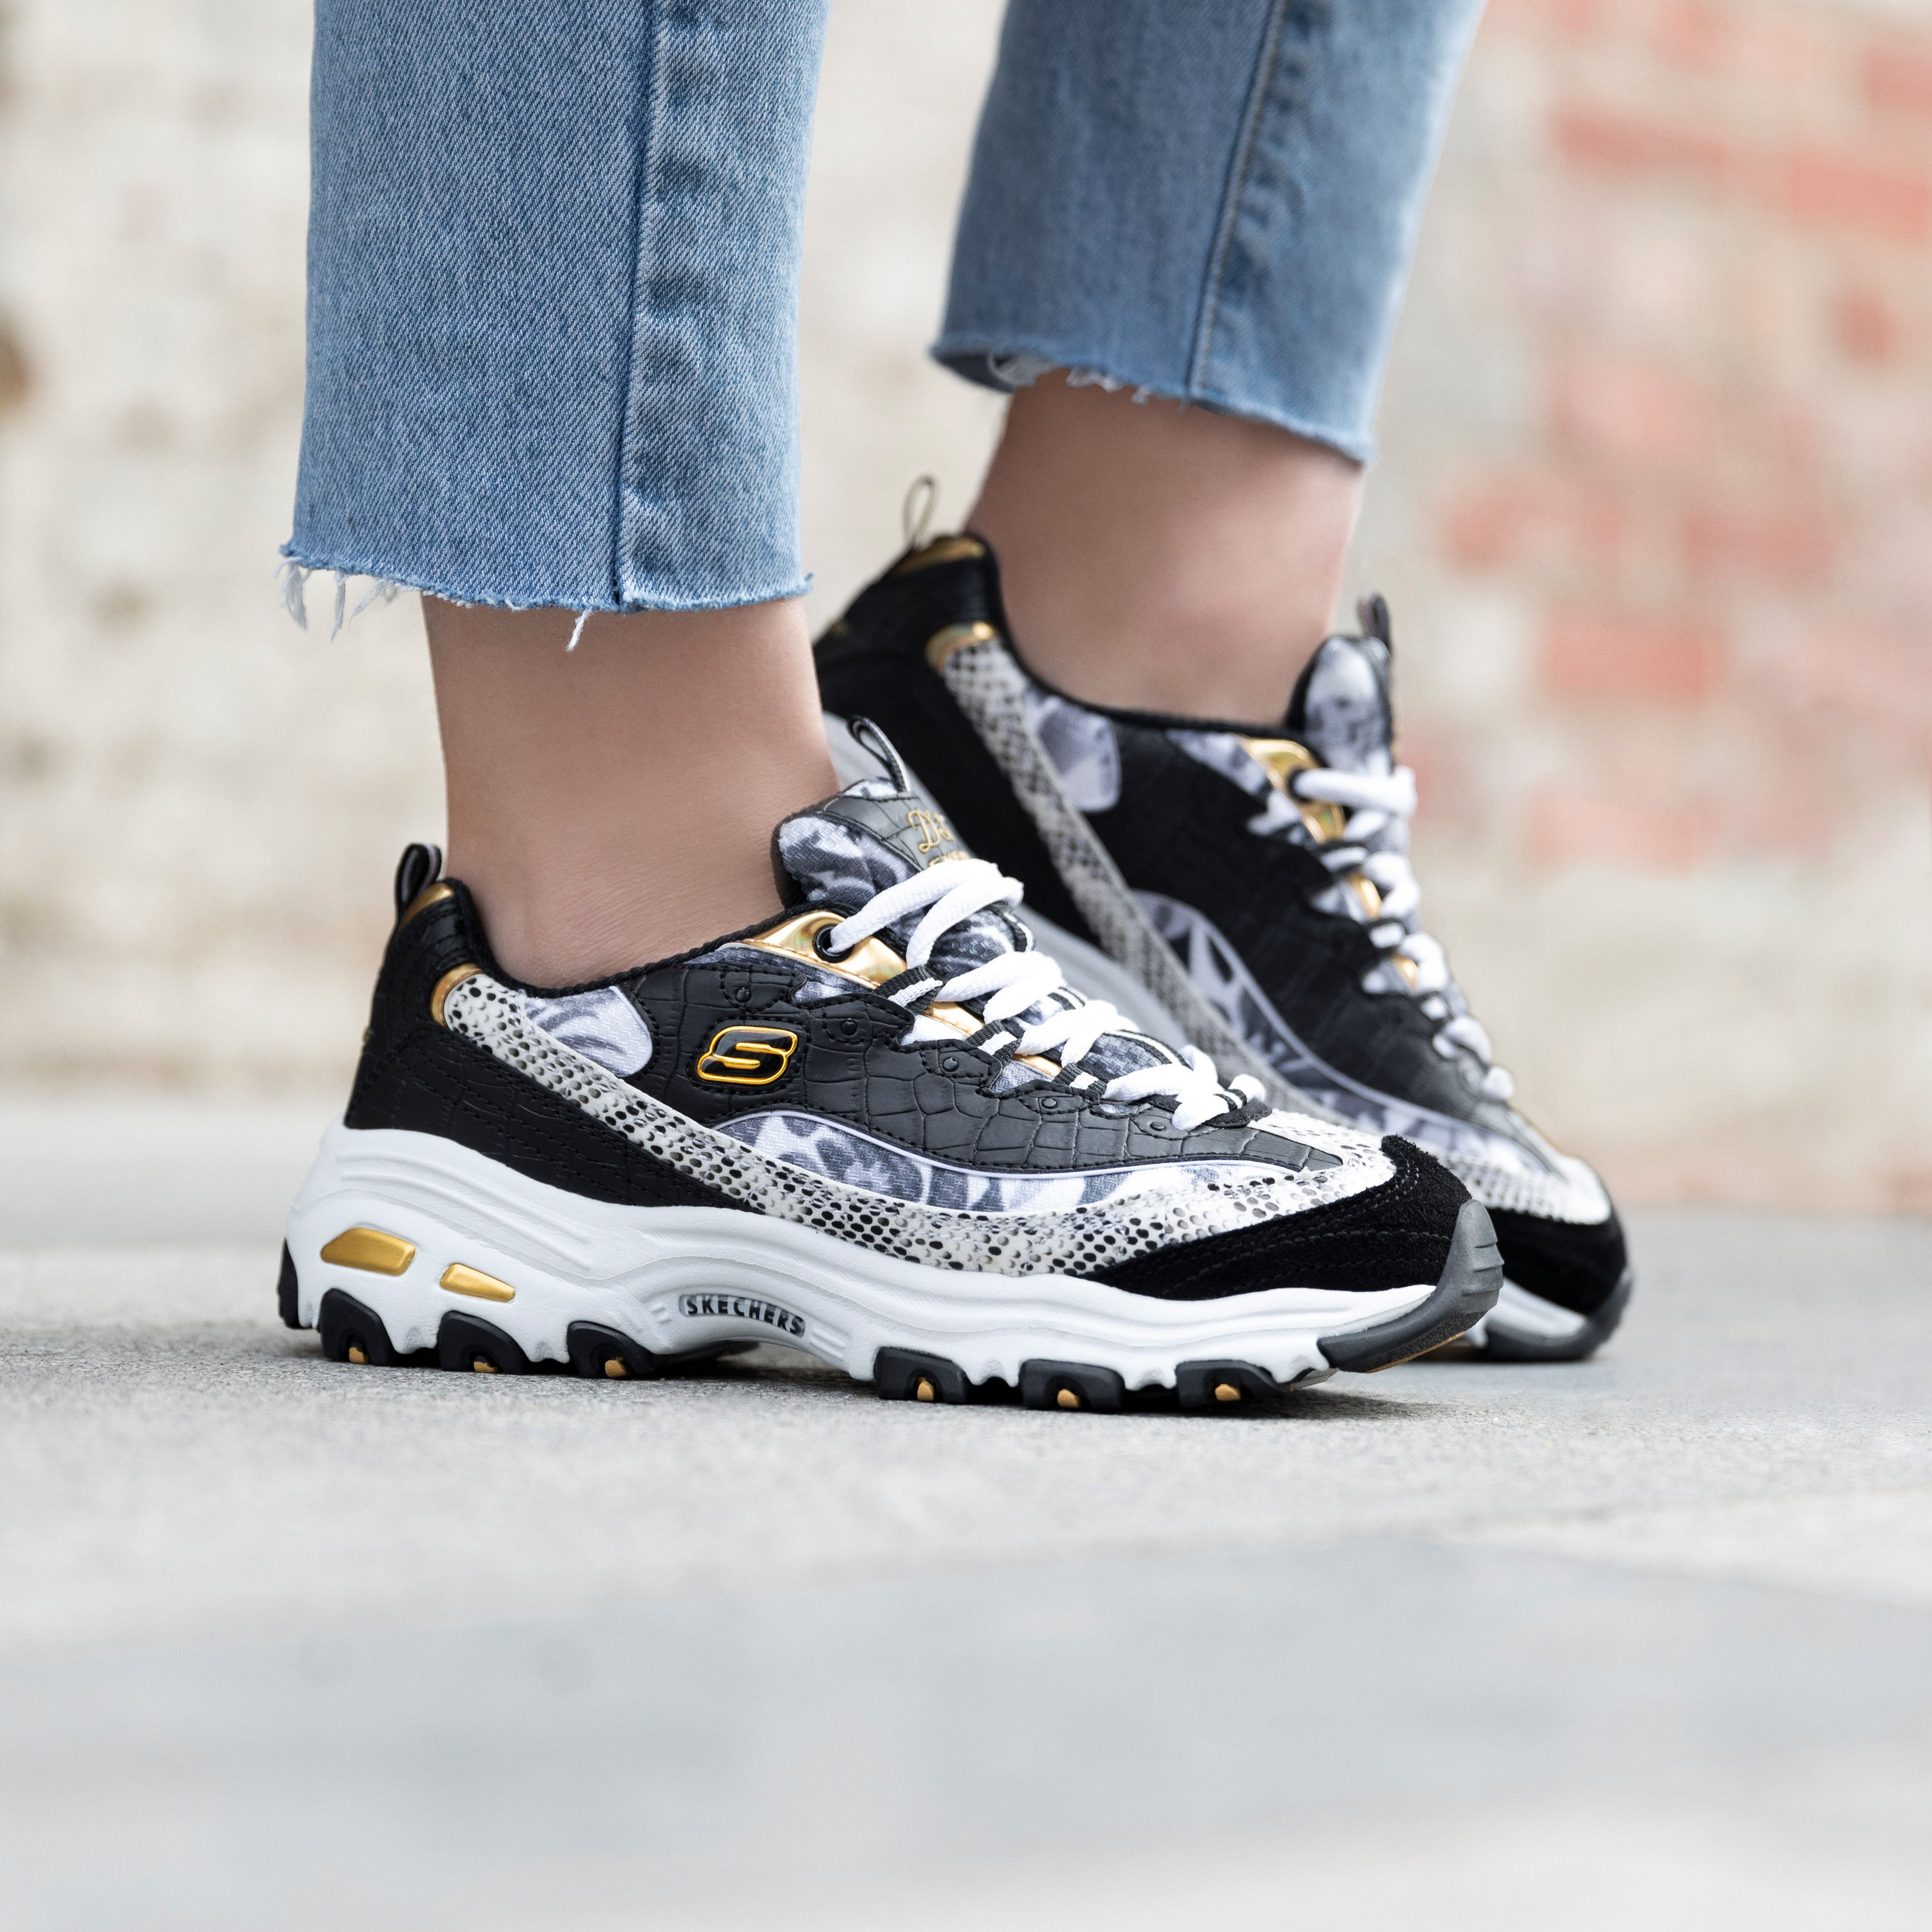 3a25df32e264 D Litefully 90s style in Skechers D Lites!  dlites  90s  90sstyle ...